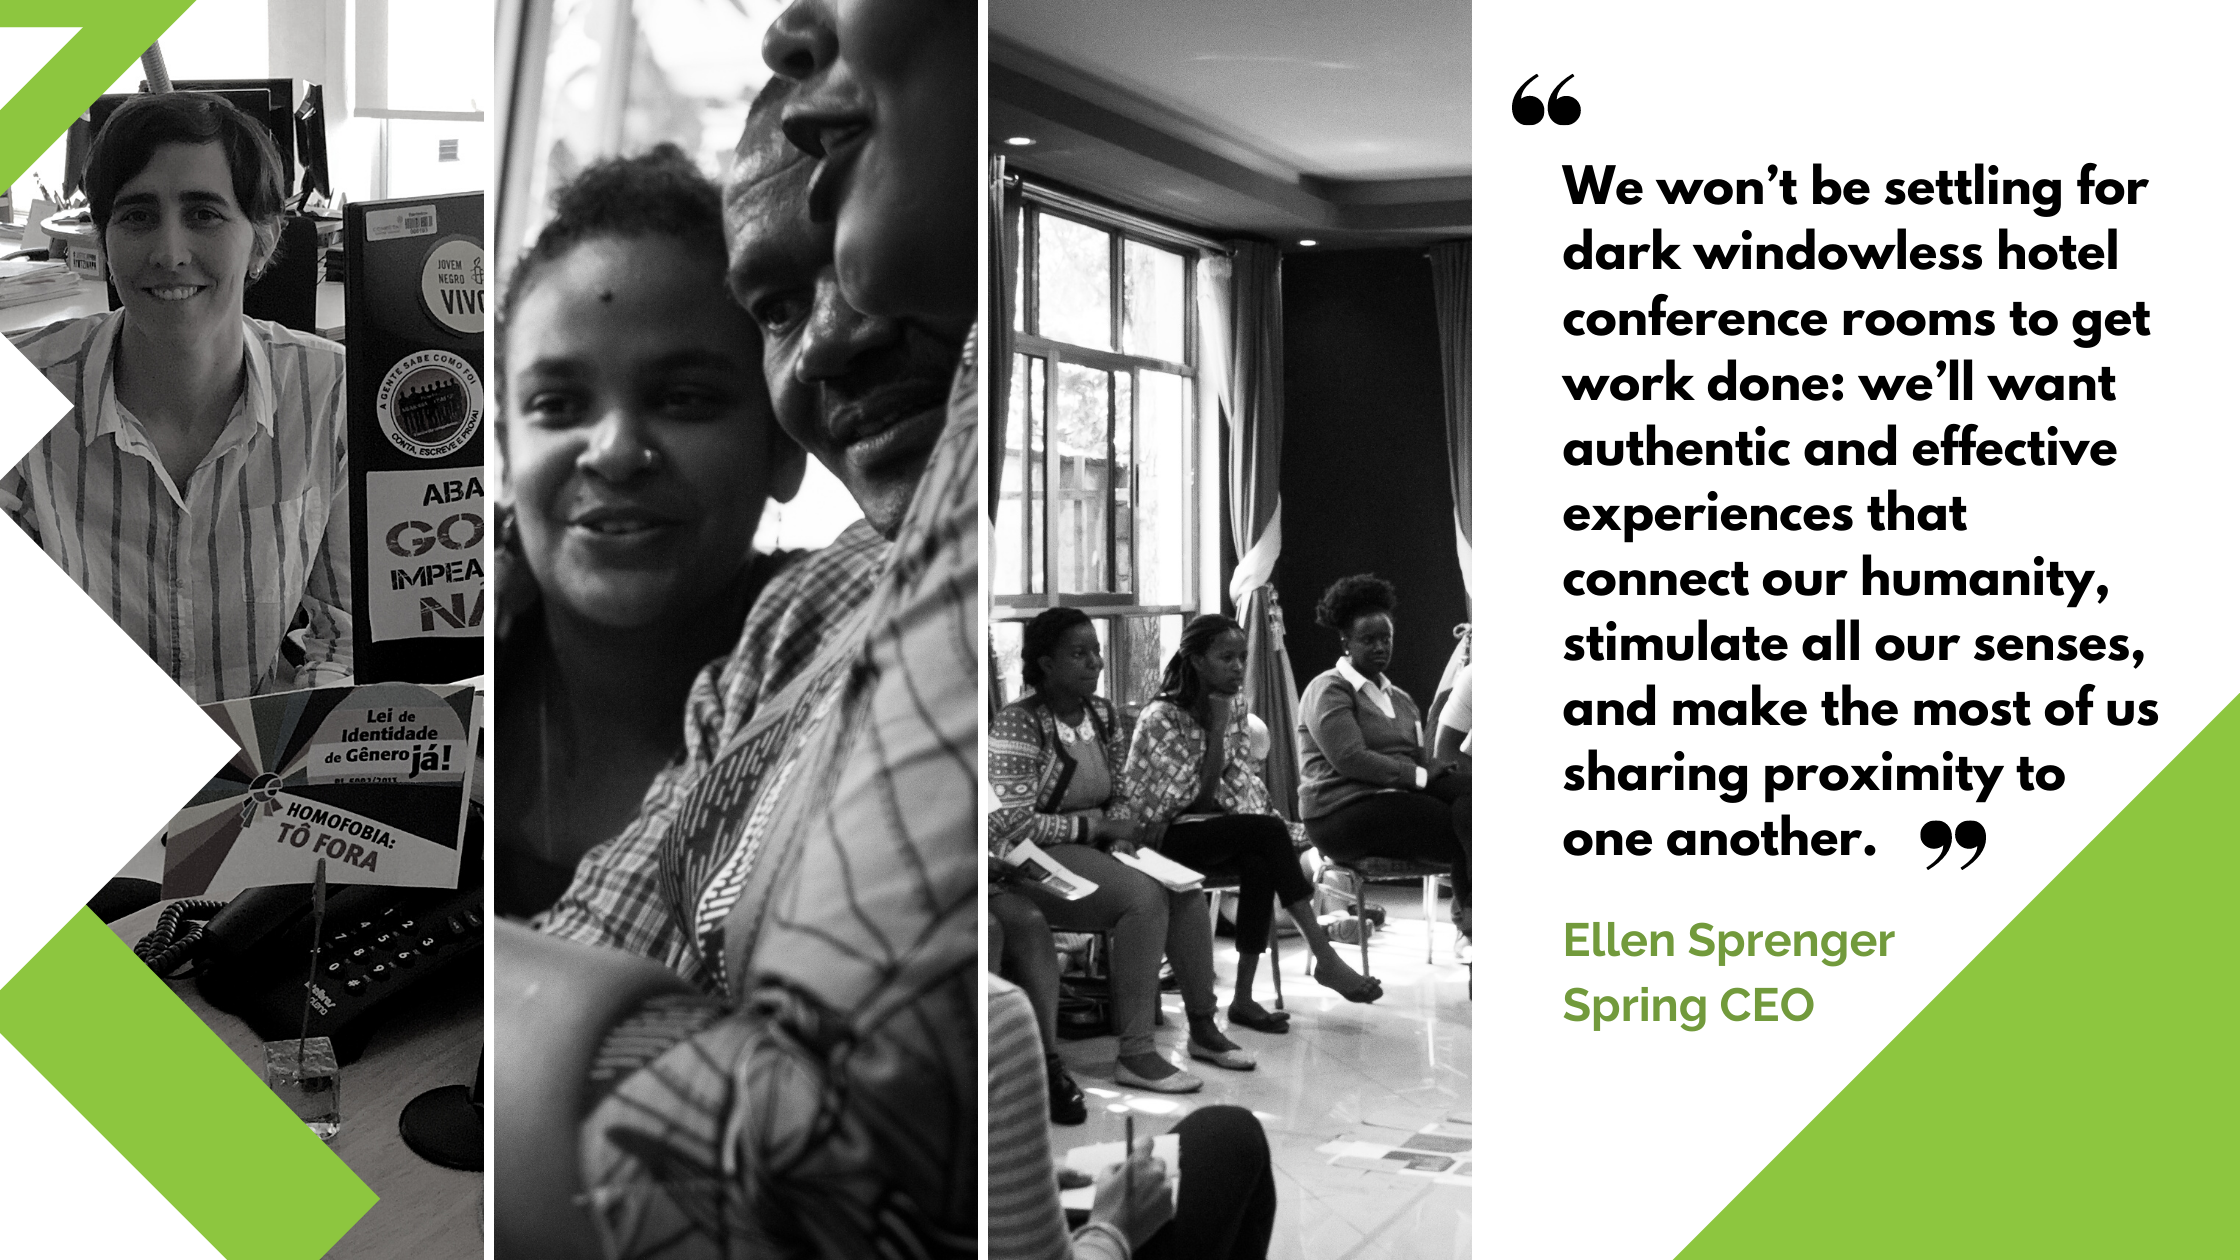 """Ellen Sprenger Spring CEO""""We won't settle for dark, windowless rooms. We'll want authentic and effective experiences that connect our humanity"""""""